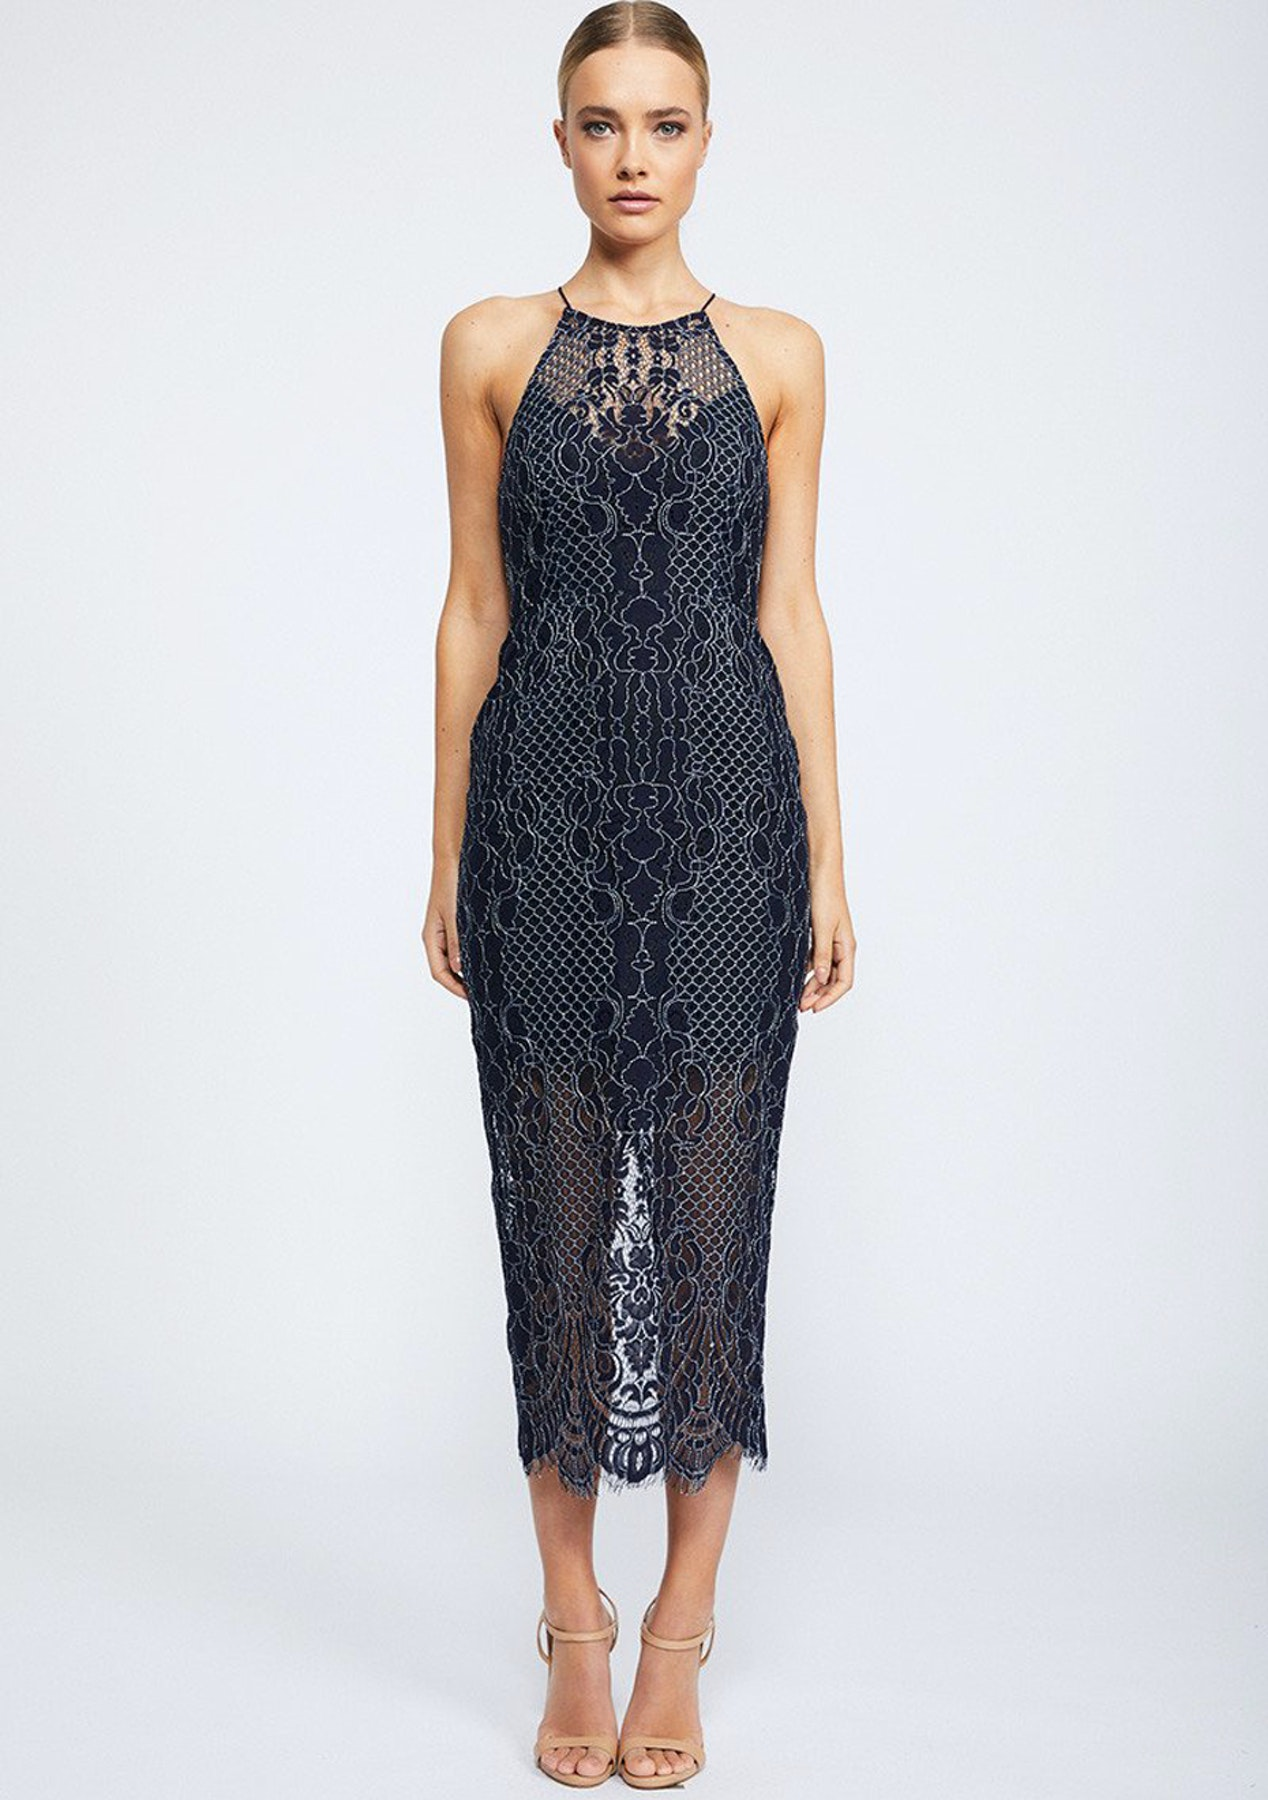 Shona Joy - Lace High Neck Midi Dress - Navy - Free Shipping Shona Joy    Isla - Onceit 80054e5ea97b